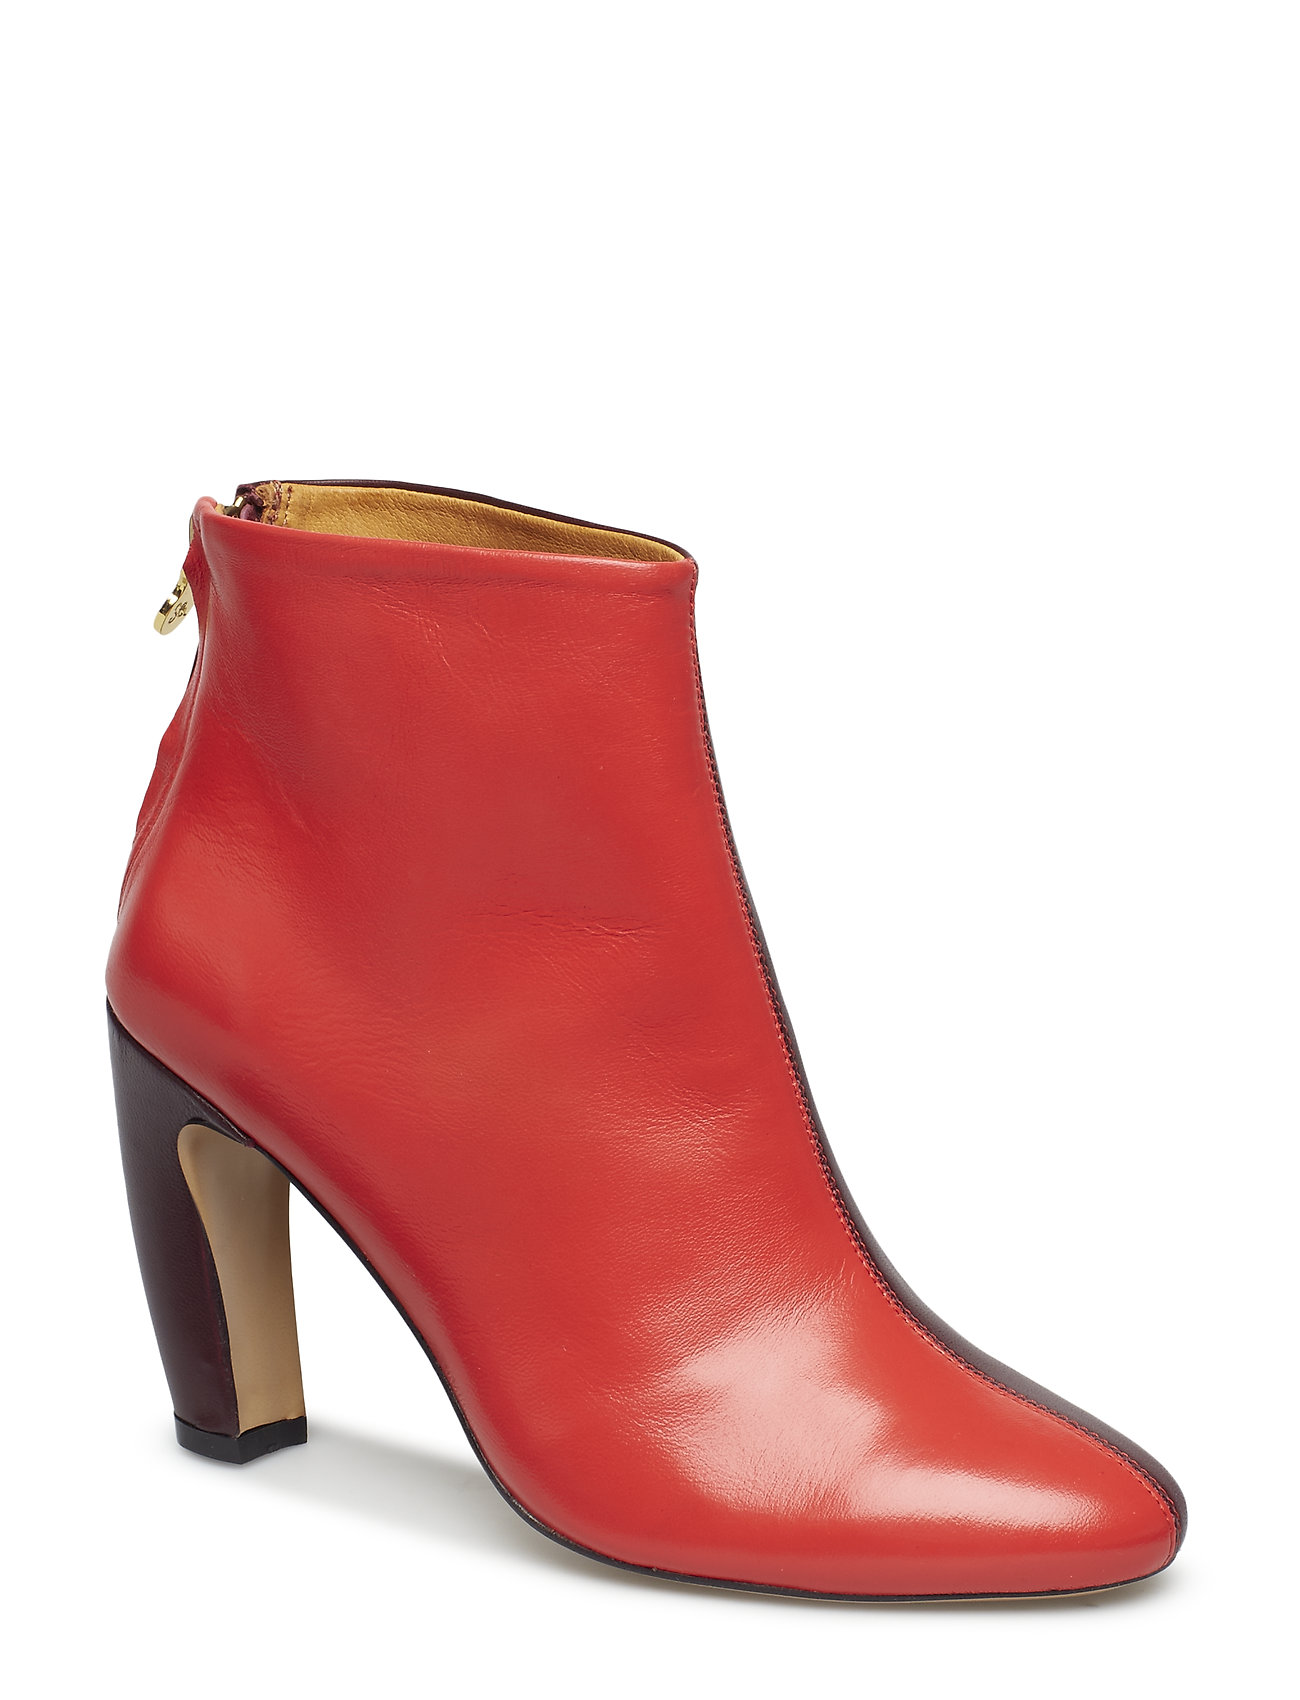 STINE GOYA Koko, 457 Leather Shoes - MULTI RED